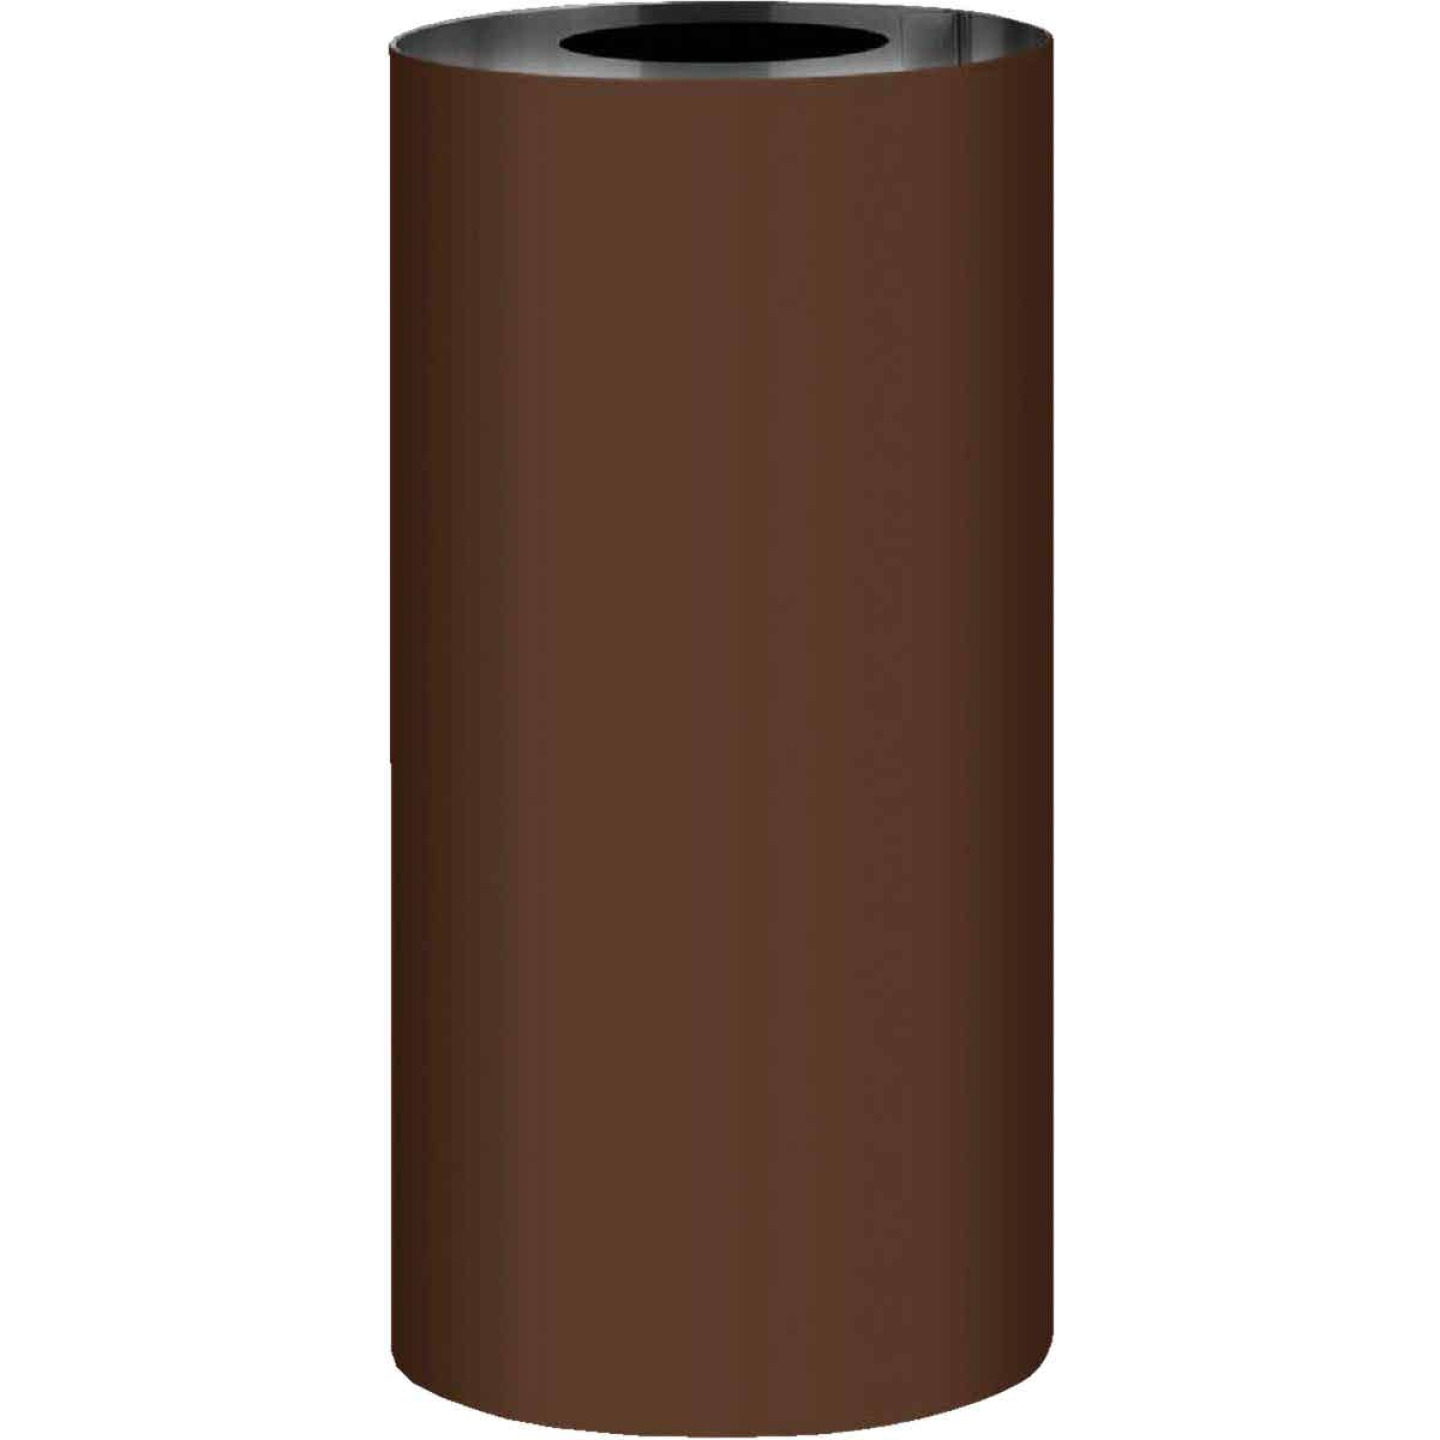 NorWesco 7 In. x 50 Ft. Brown Galvanized Roll Valley Flashing Image 1